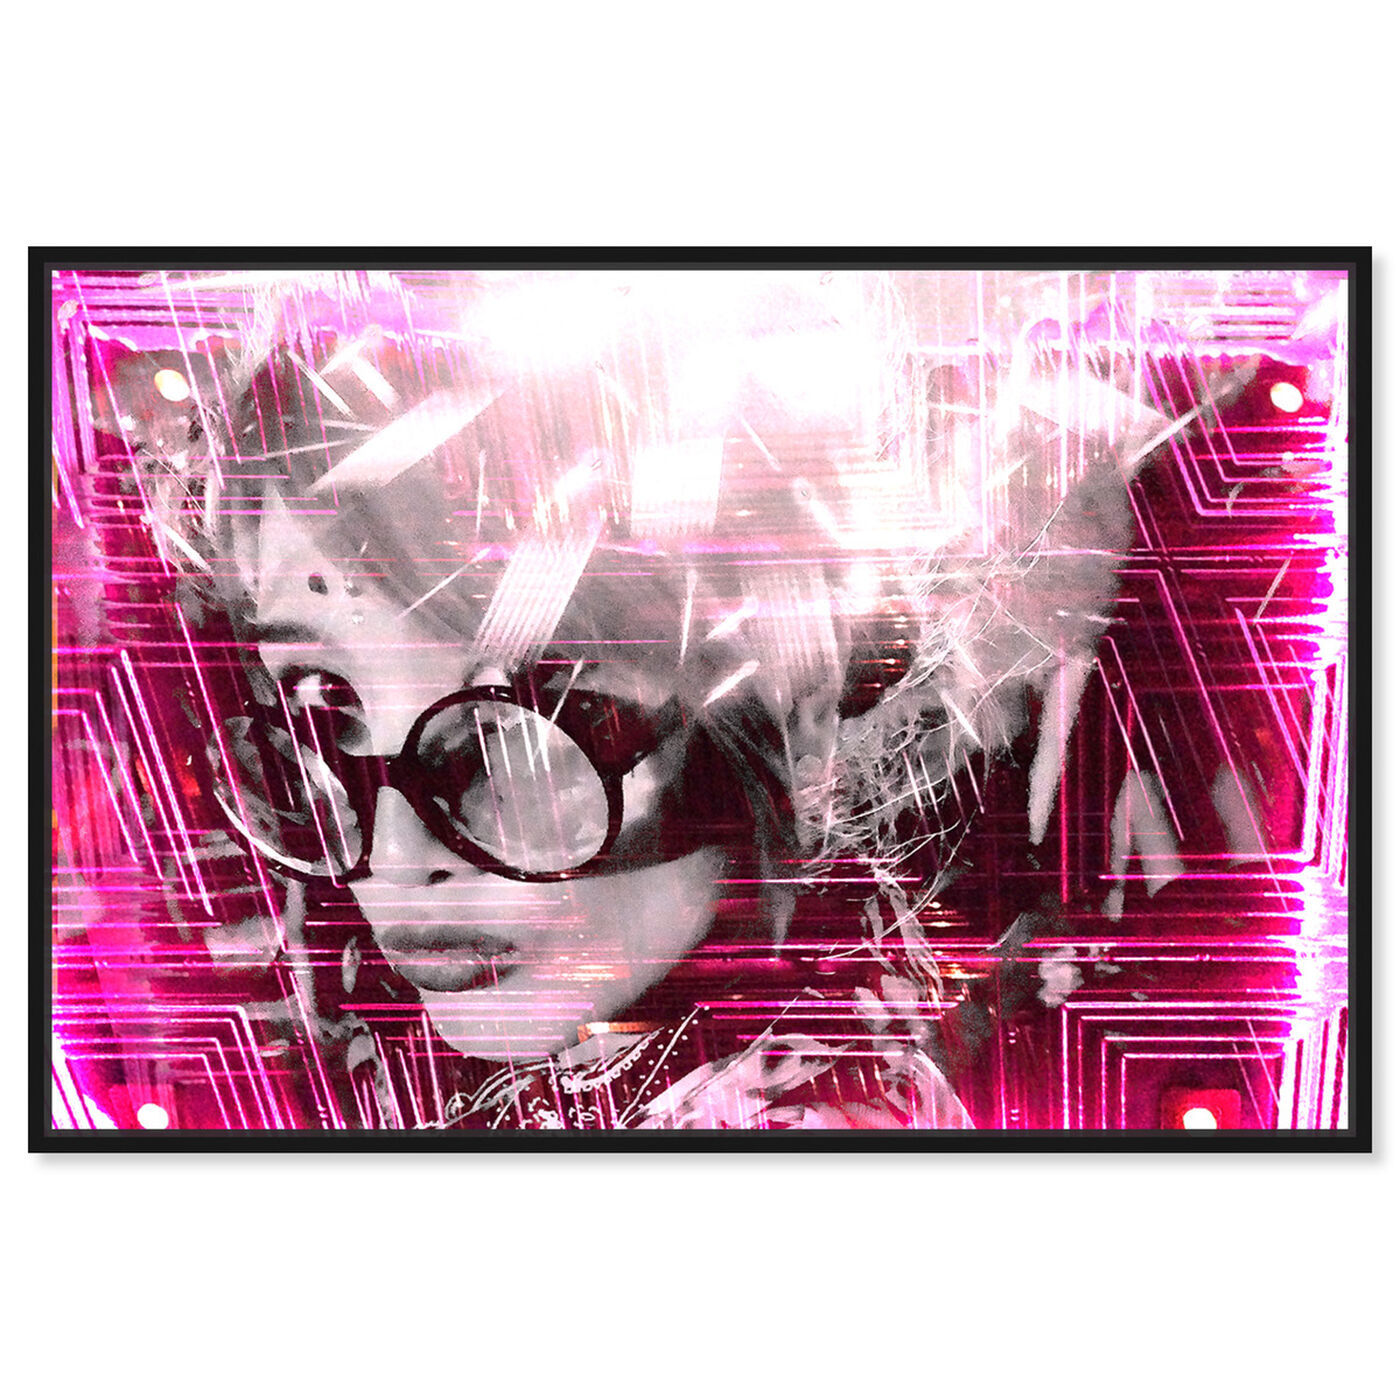 Front view of Curro Cardenal - Pink neon featuring people and portraits and portraits art.